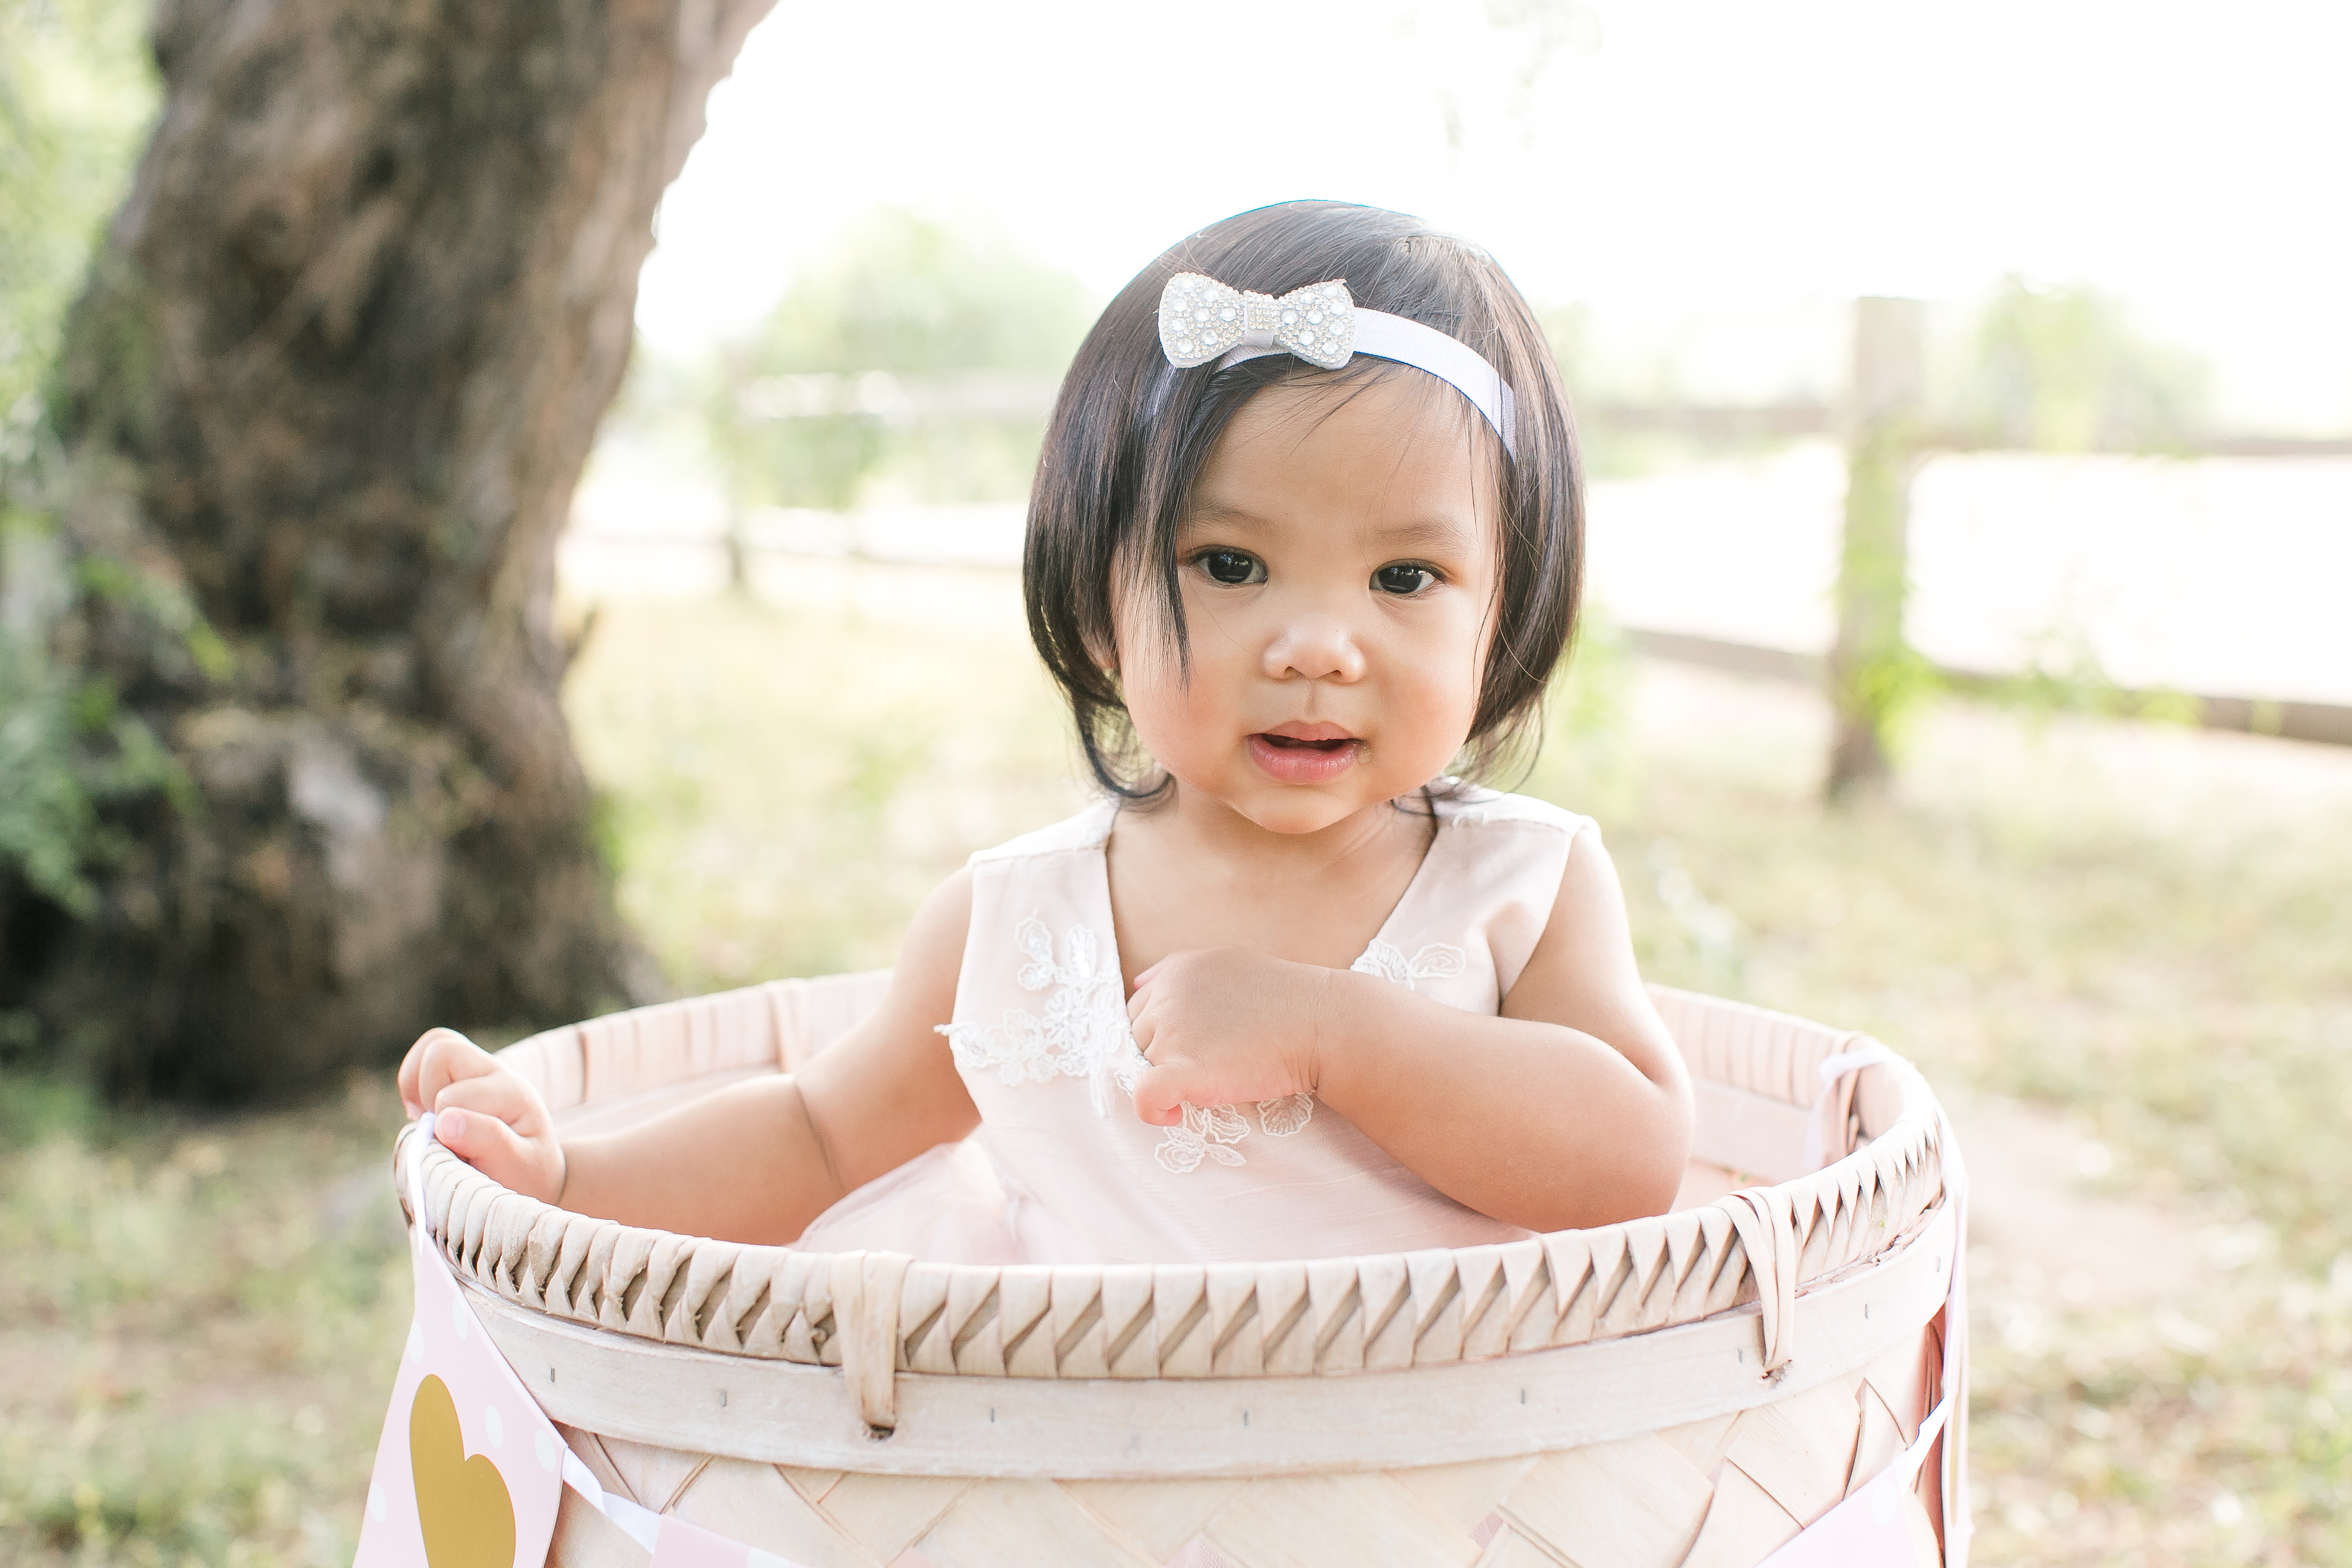 NEMA Photography J.Pham038 1 - Baby Justine // One year old portraits